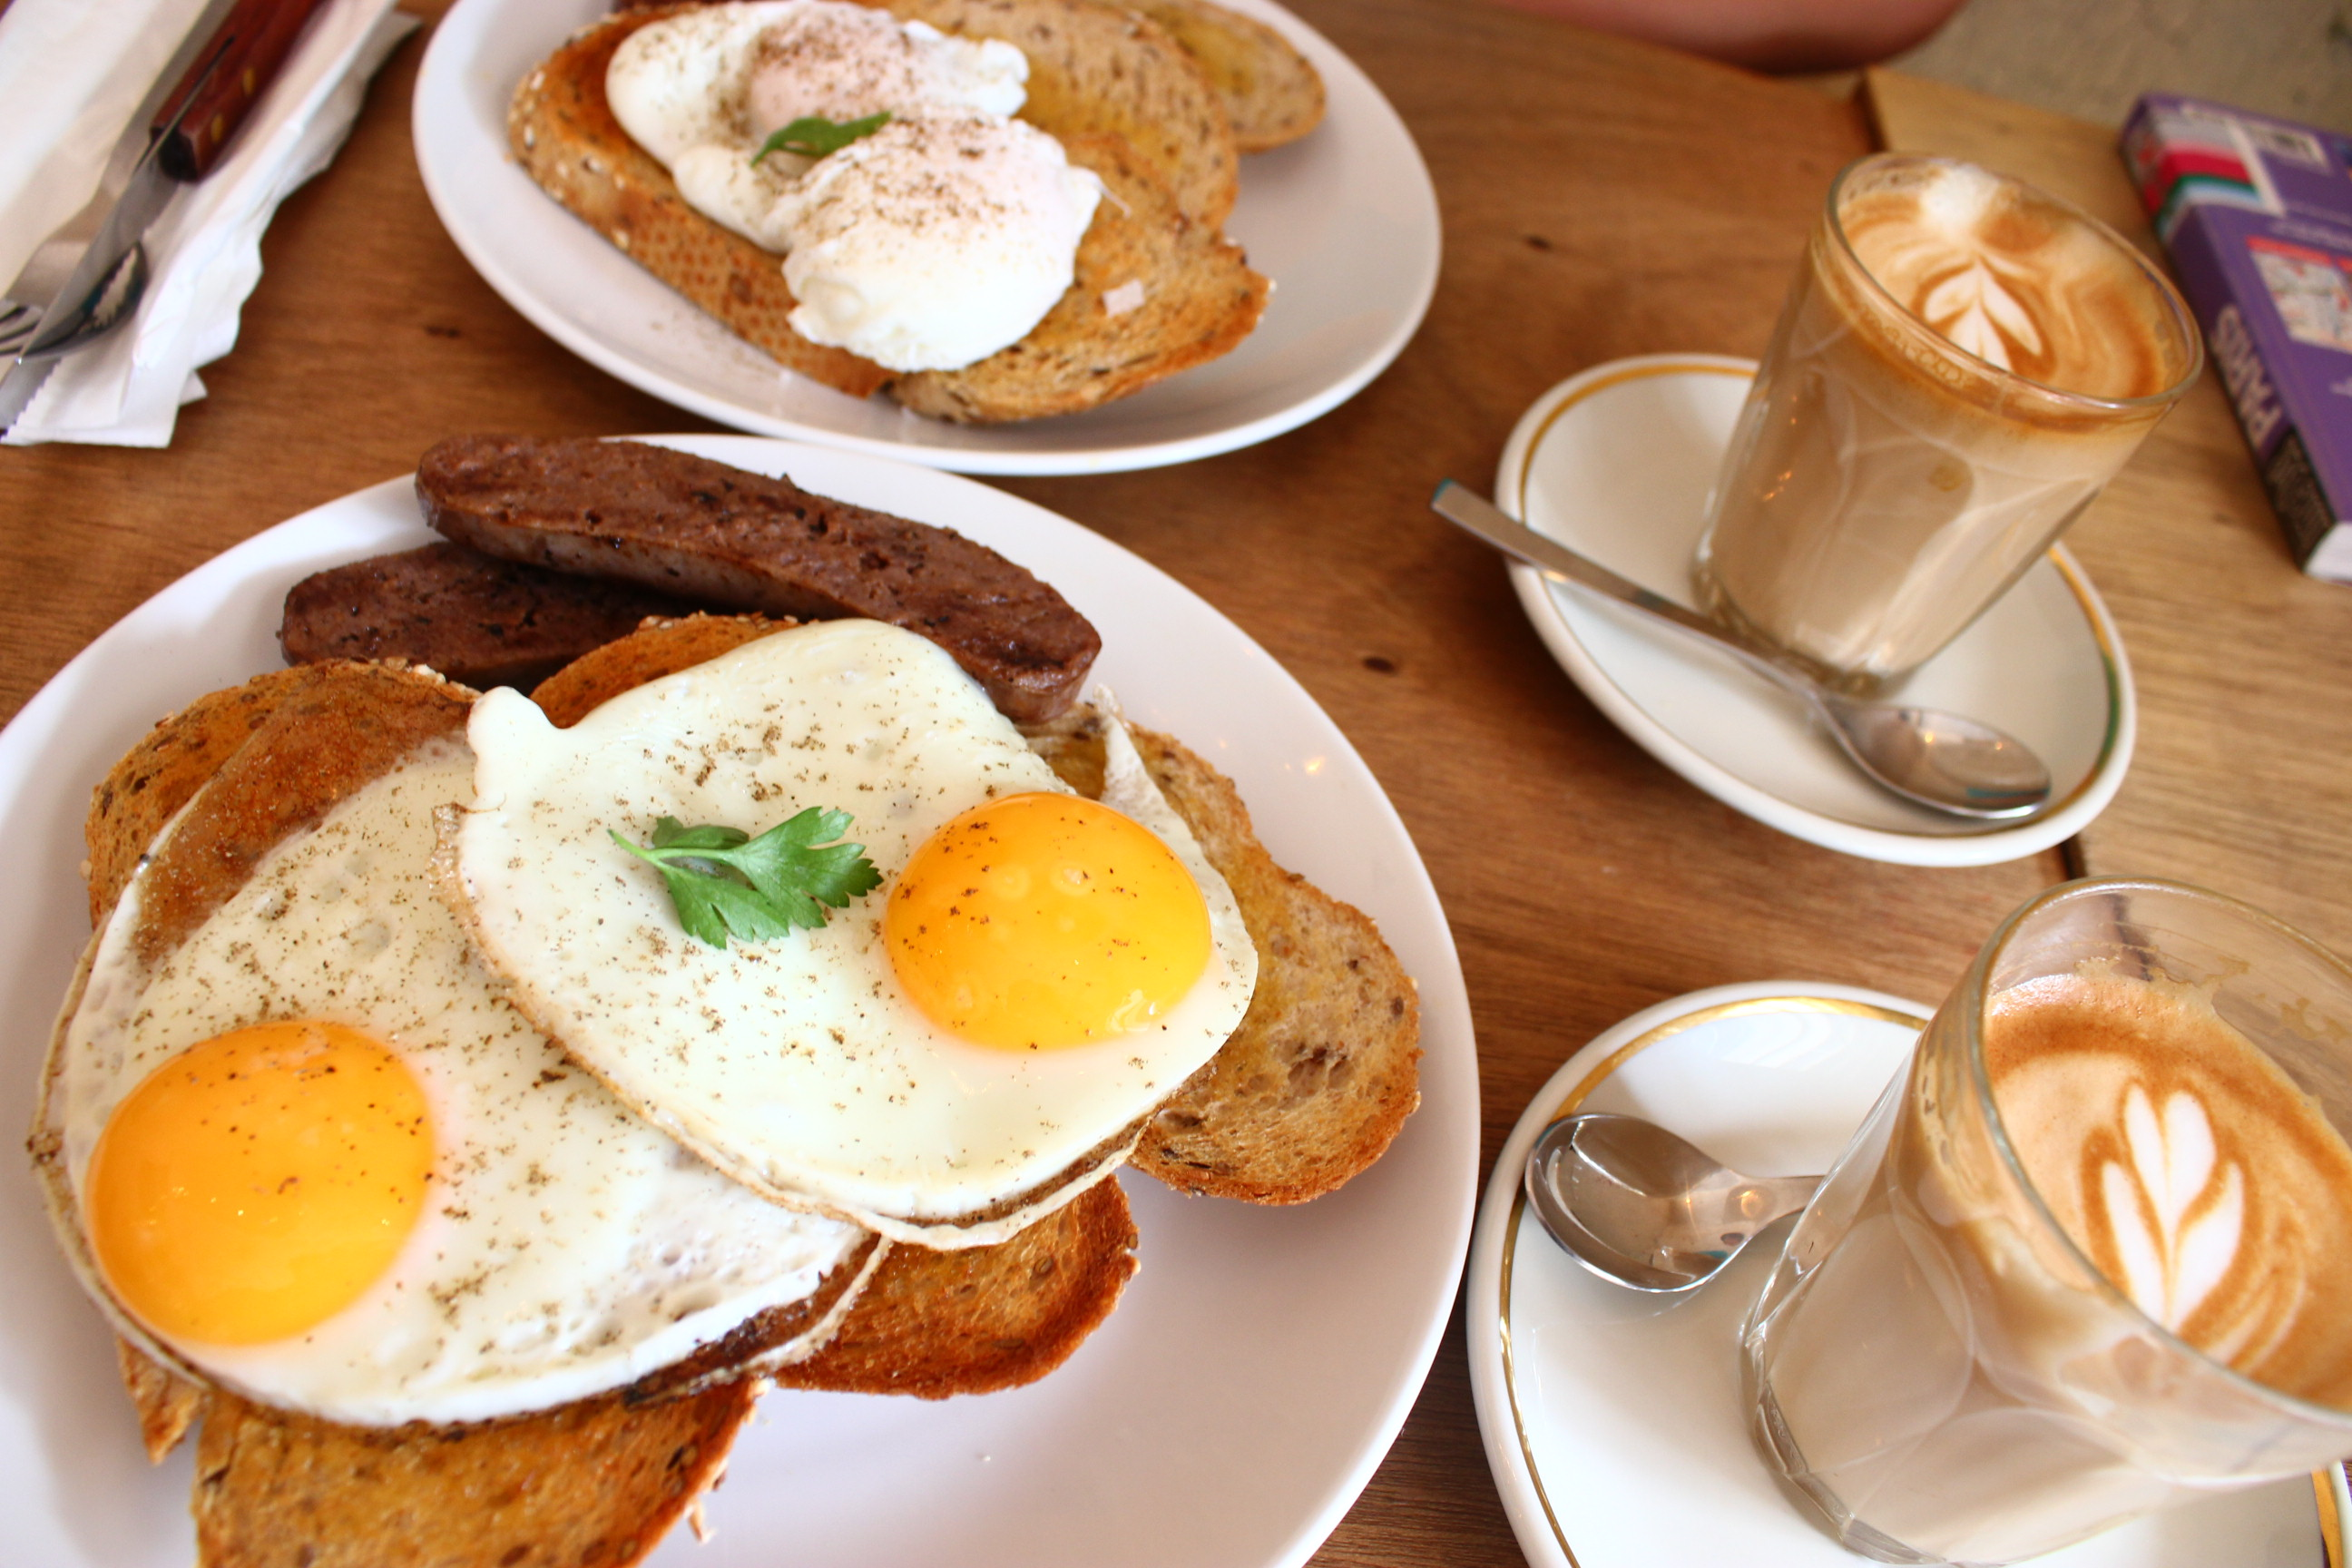 Food Review: The Bravery Cafe | Chill-lax cafe in Jalan Besar ...